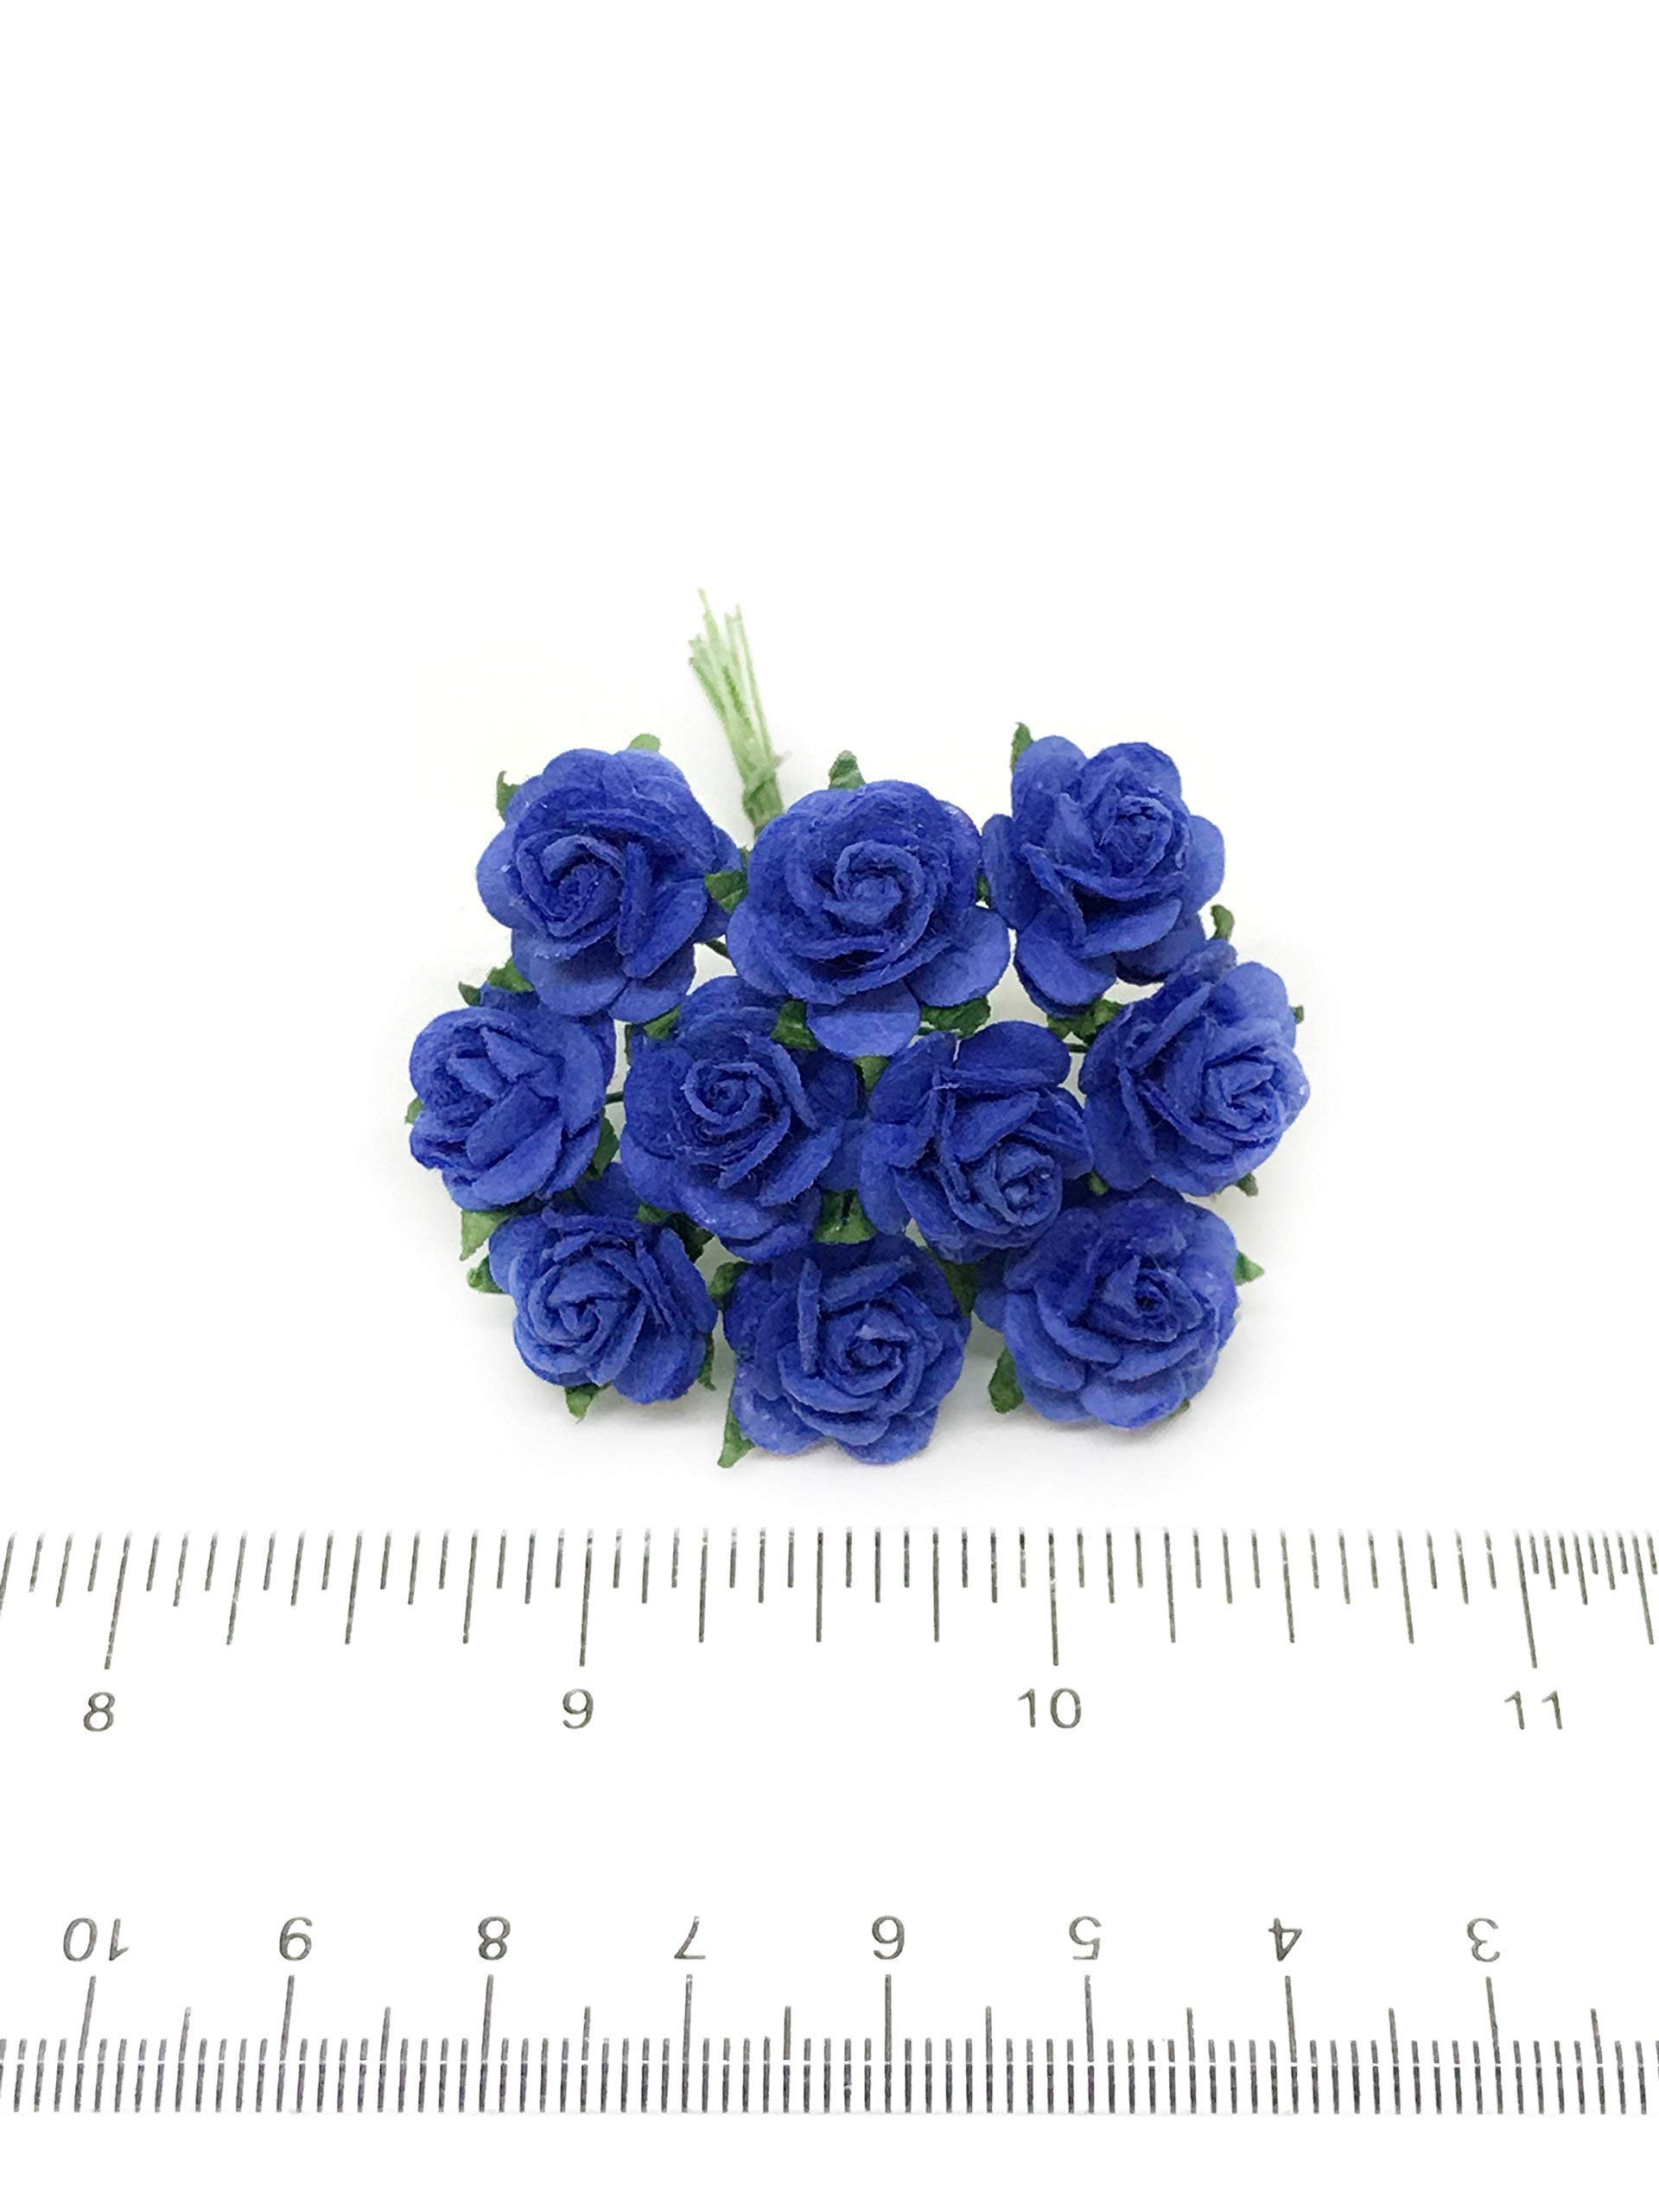 12-Royal-Blue-Mulberry-Paper-Flowers-Paper-Roses-Blue-Flowers-Floral-Crown-Flowers-DIY-Wedding-Wedding-Table-Flowers-Navy-Blue-Wedding-Artificial-Flowers-50-Pieces